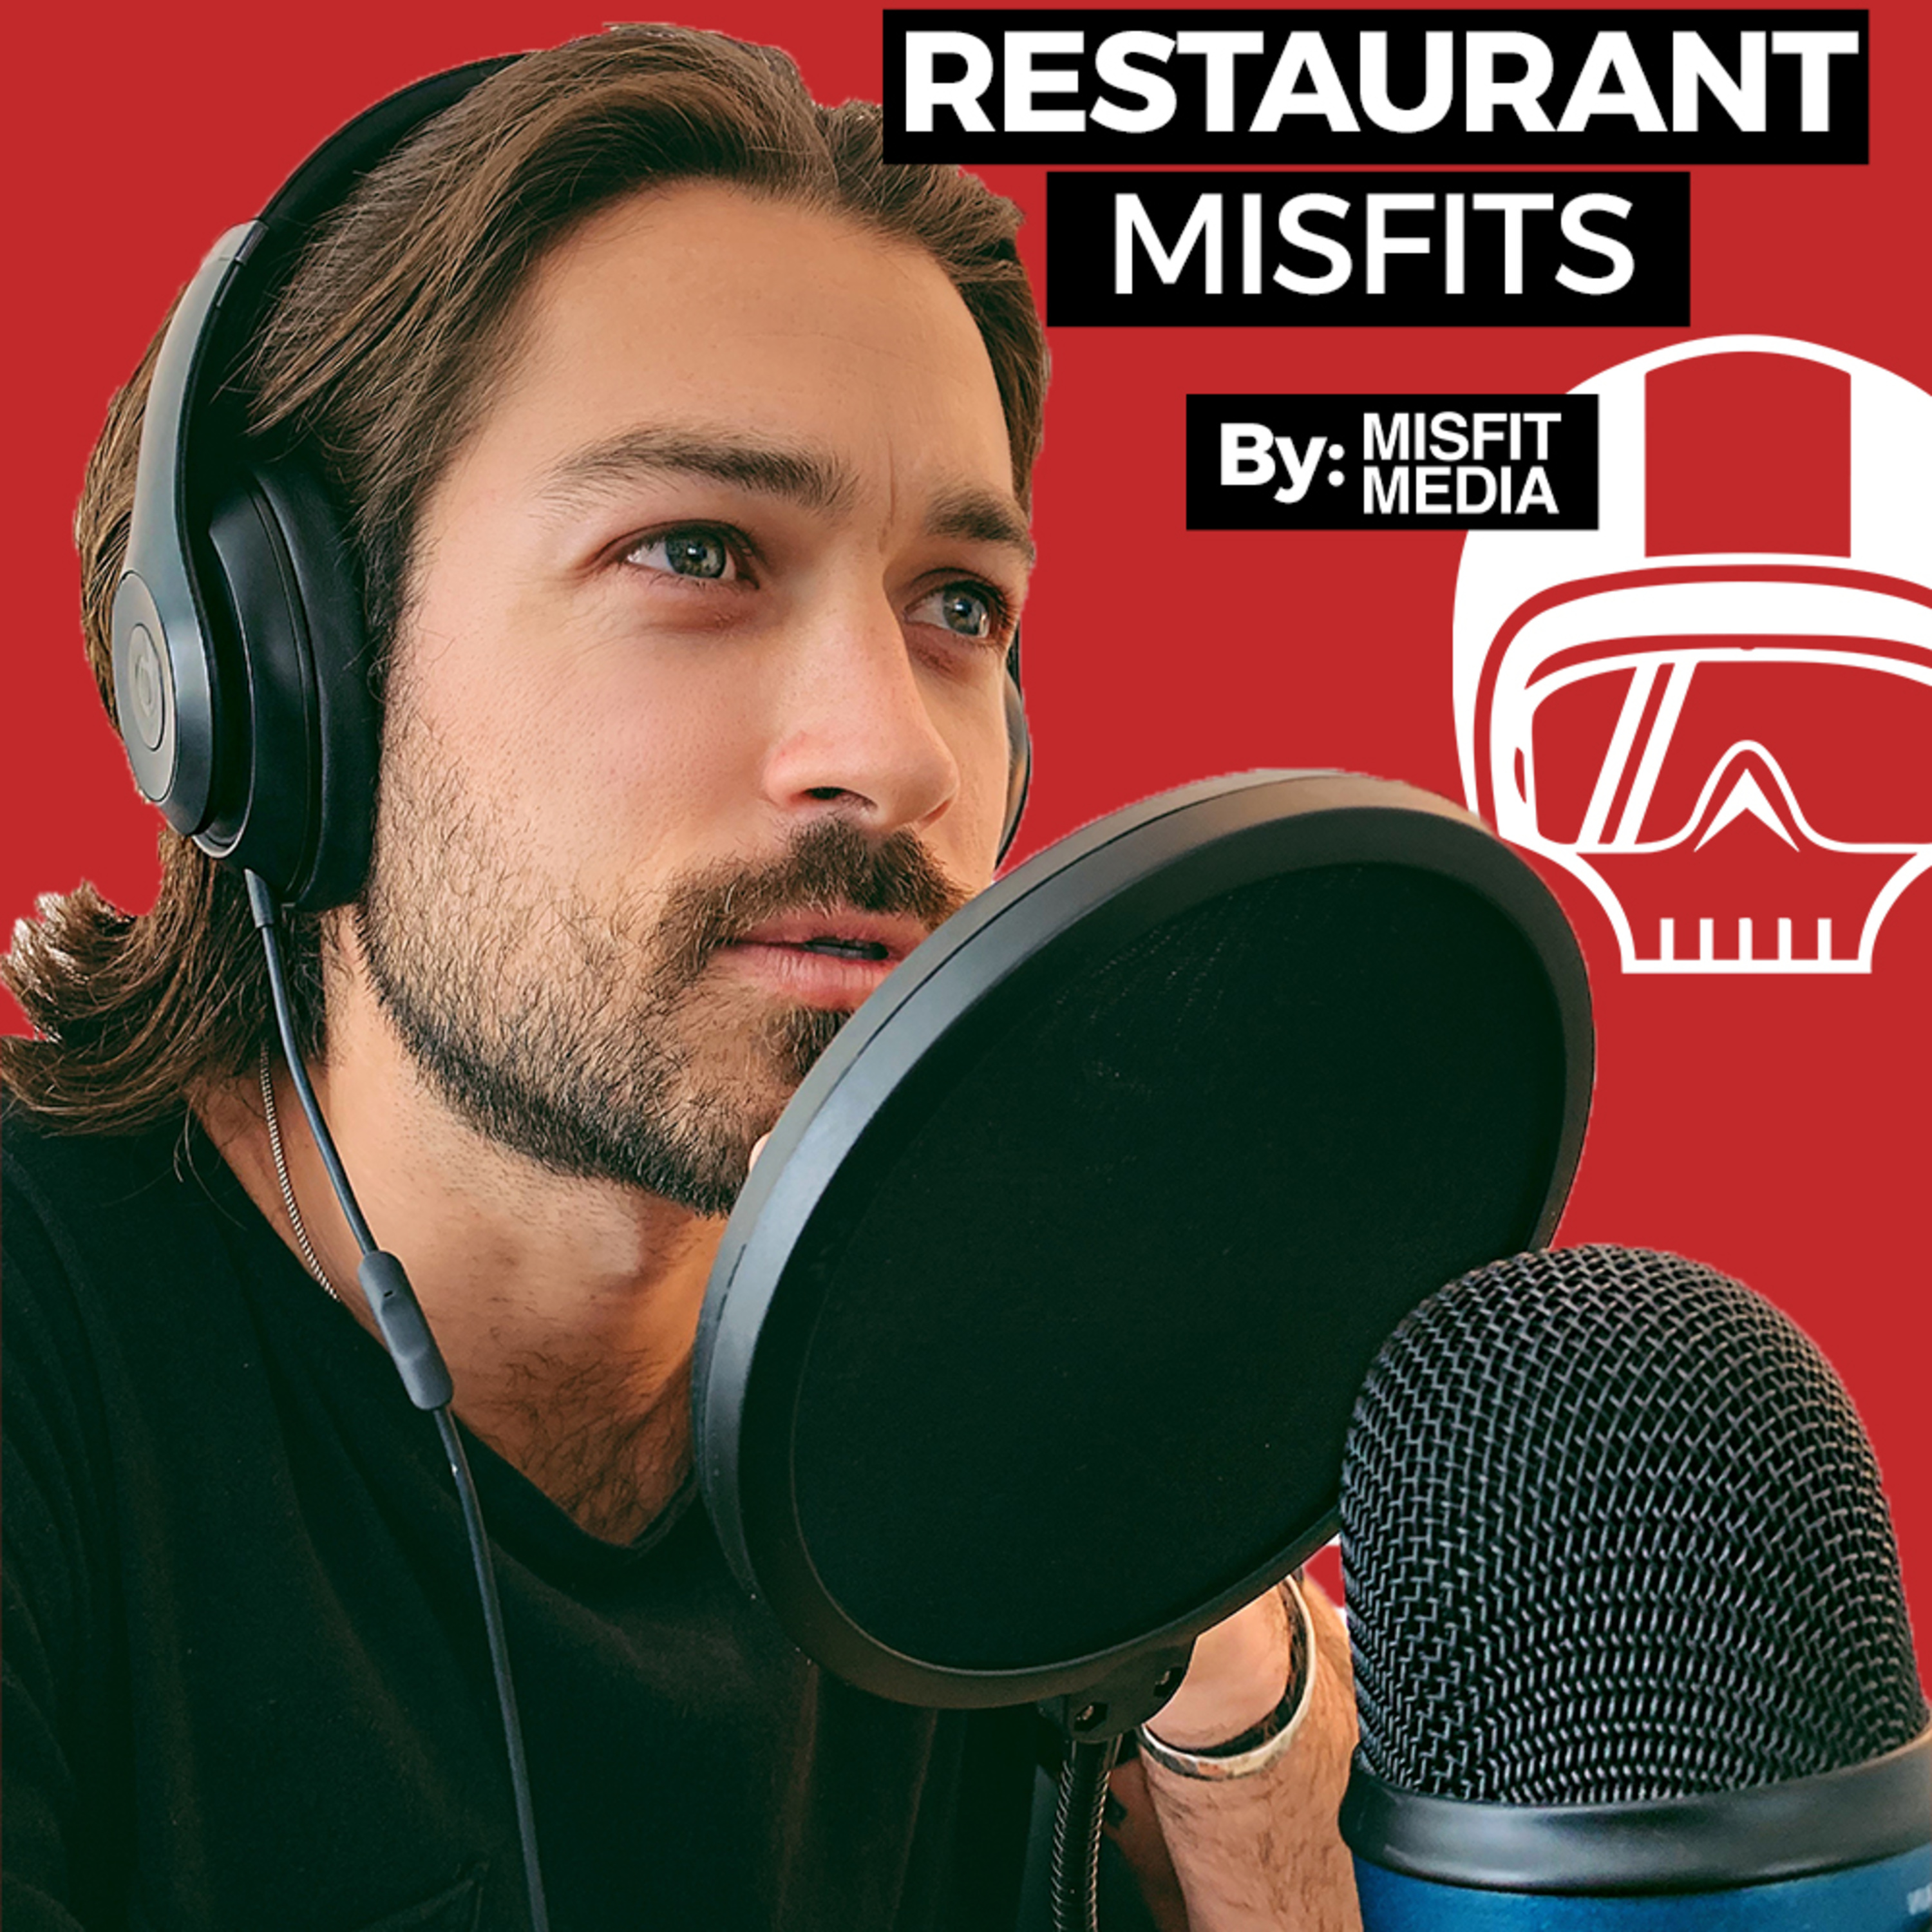 EP13 - The Future of Restaurants as Told by a Veteran Chef & Technologist